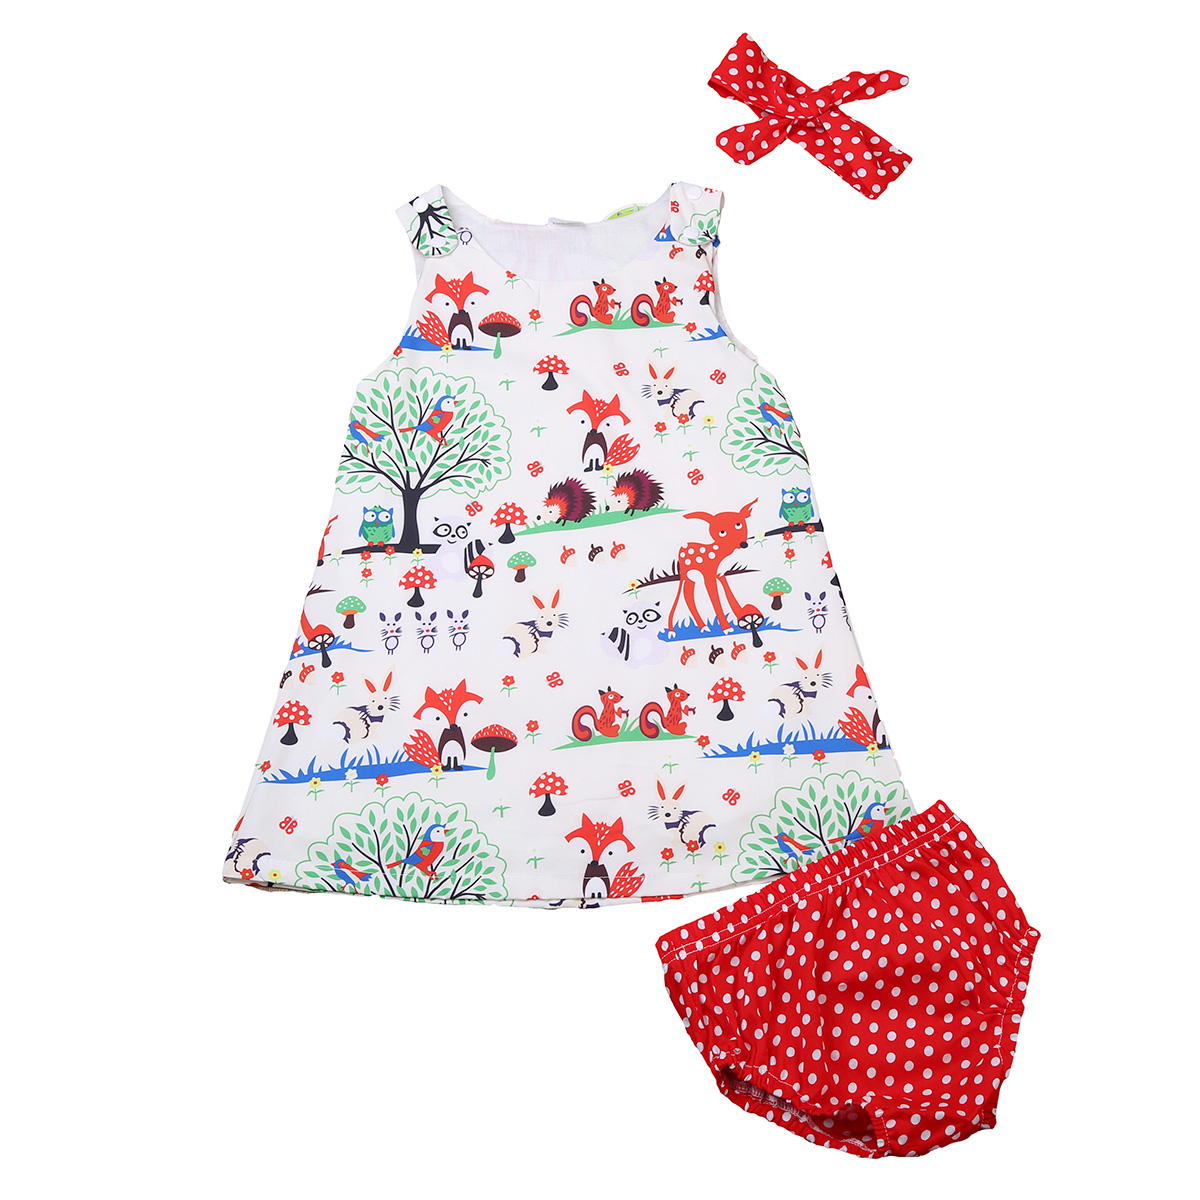 2017 HOT Fashion Baby Outfits Newborn Infant Girl Sleeveless Tops Kids Baby Polka Dots Shorts Cute Headband Girl Sunsuit Clothes 3pcs set newborn infant baby boy girl clothes 2017 summer short sleeve leopard floral romper bodysuit headband shoes outfits